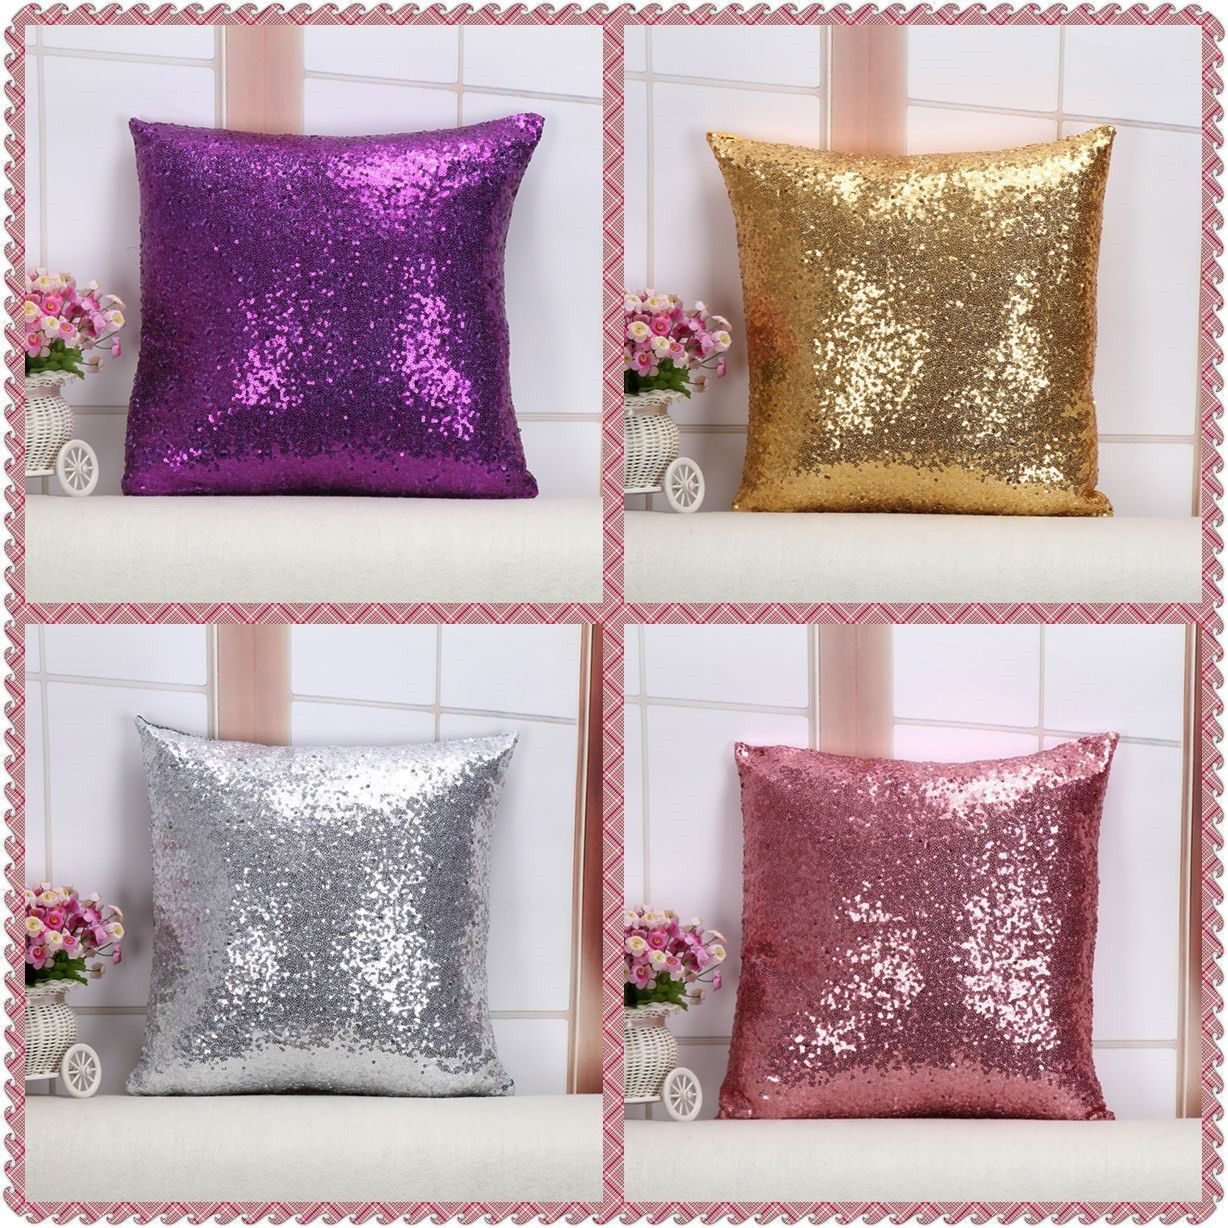 Maiyubo european sequins pillow cover nordic pure color throw pillow